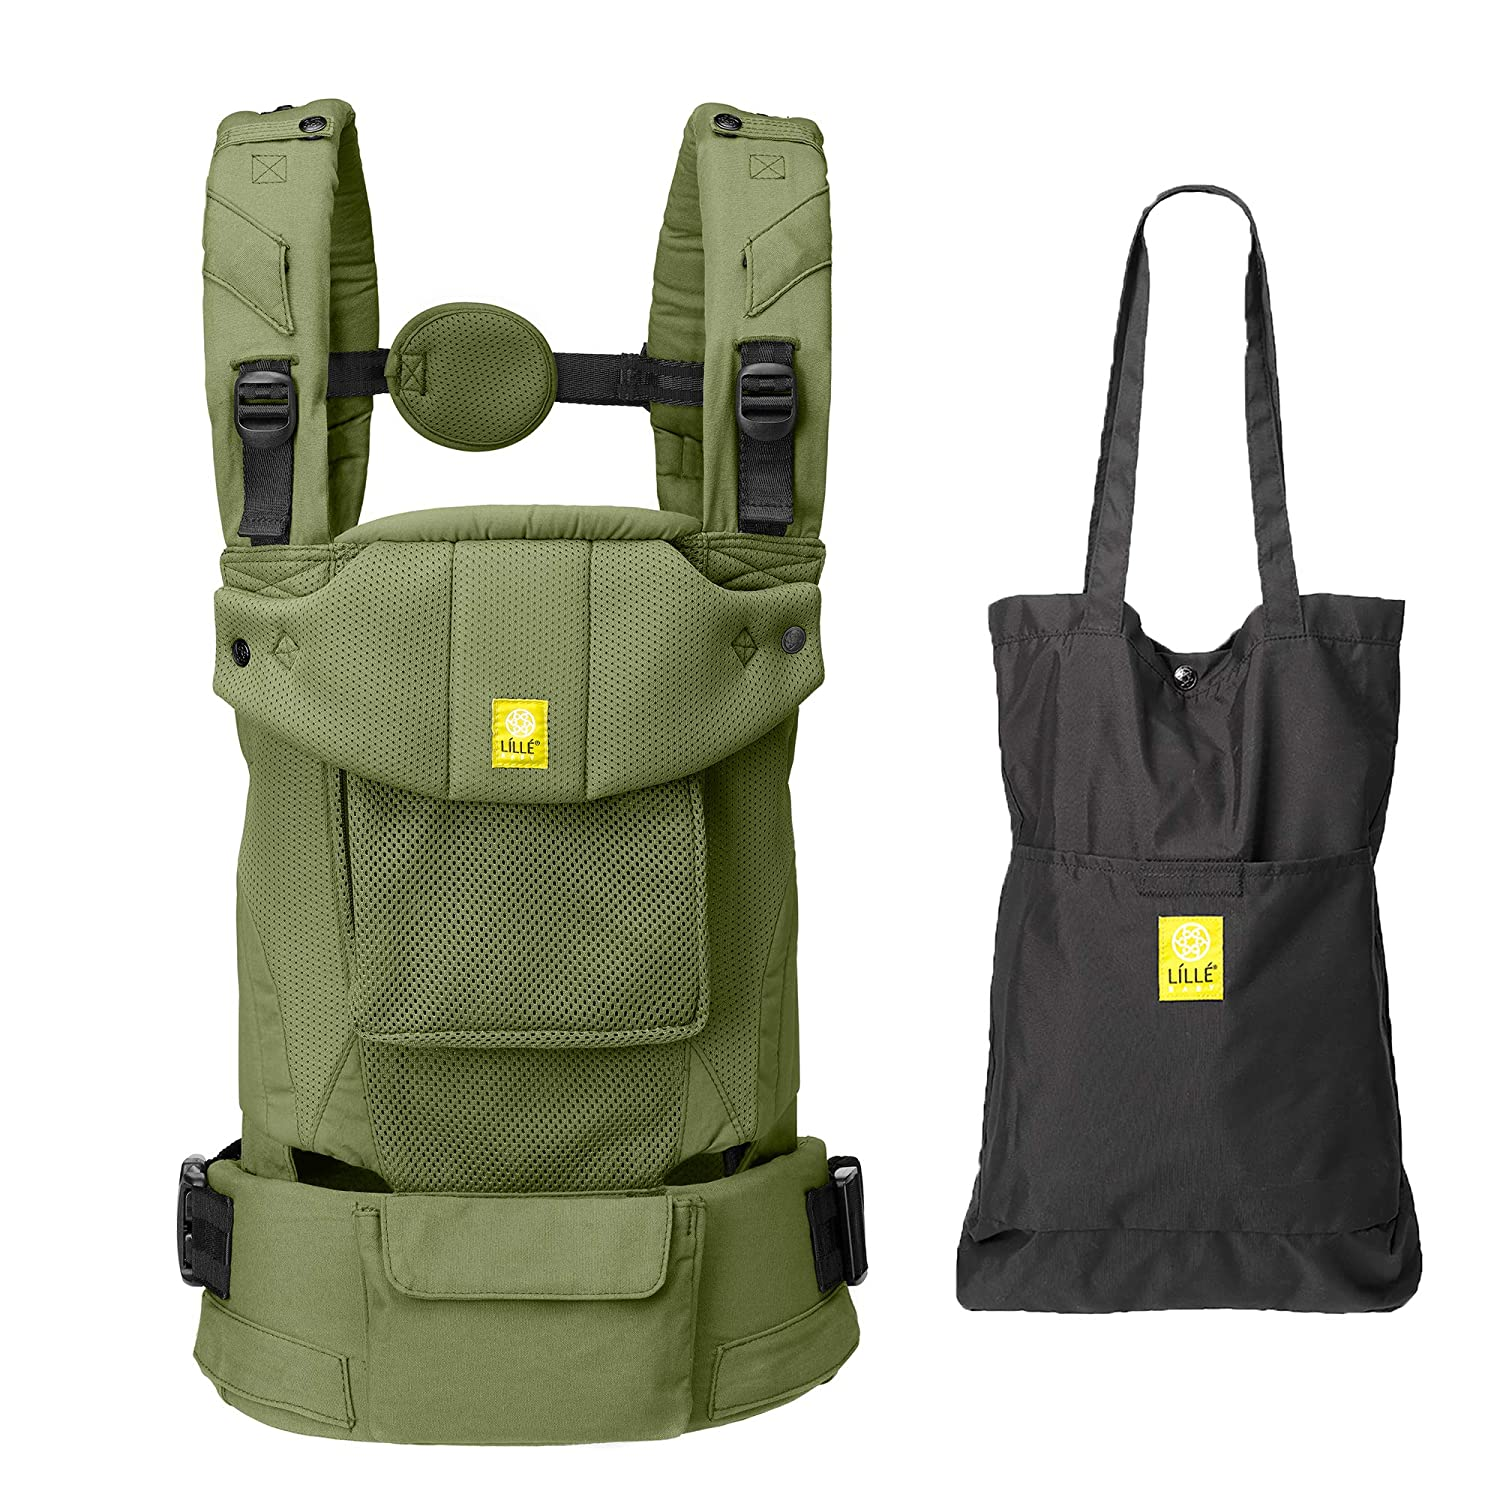 LÍLLÉbaby Serenity Airflow SIX-Position Ergonomic Baby & Child Carrier with Convertible Tote, Artichoke - Breathable Mesh